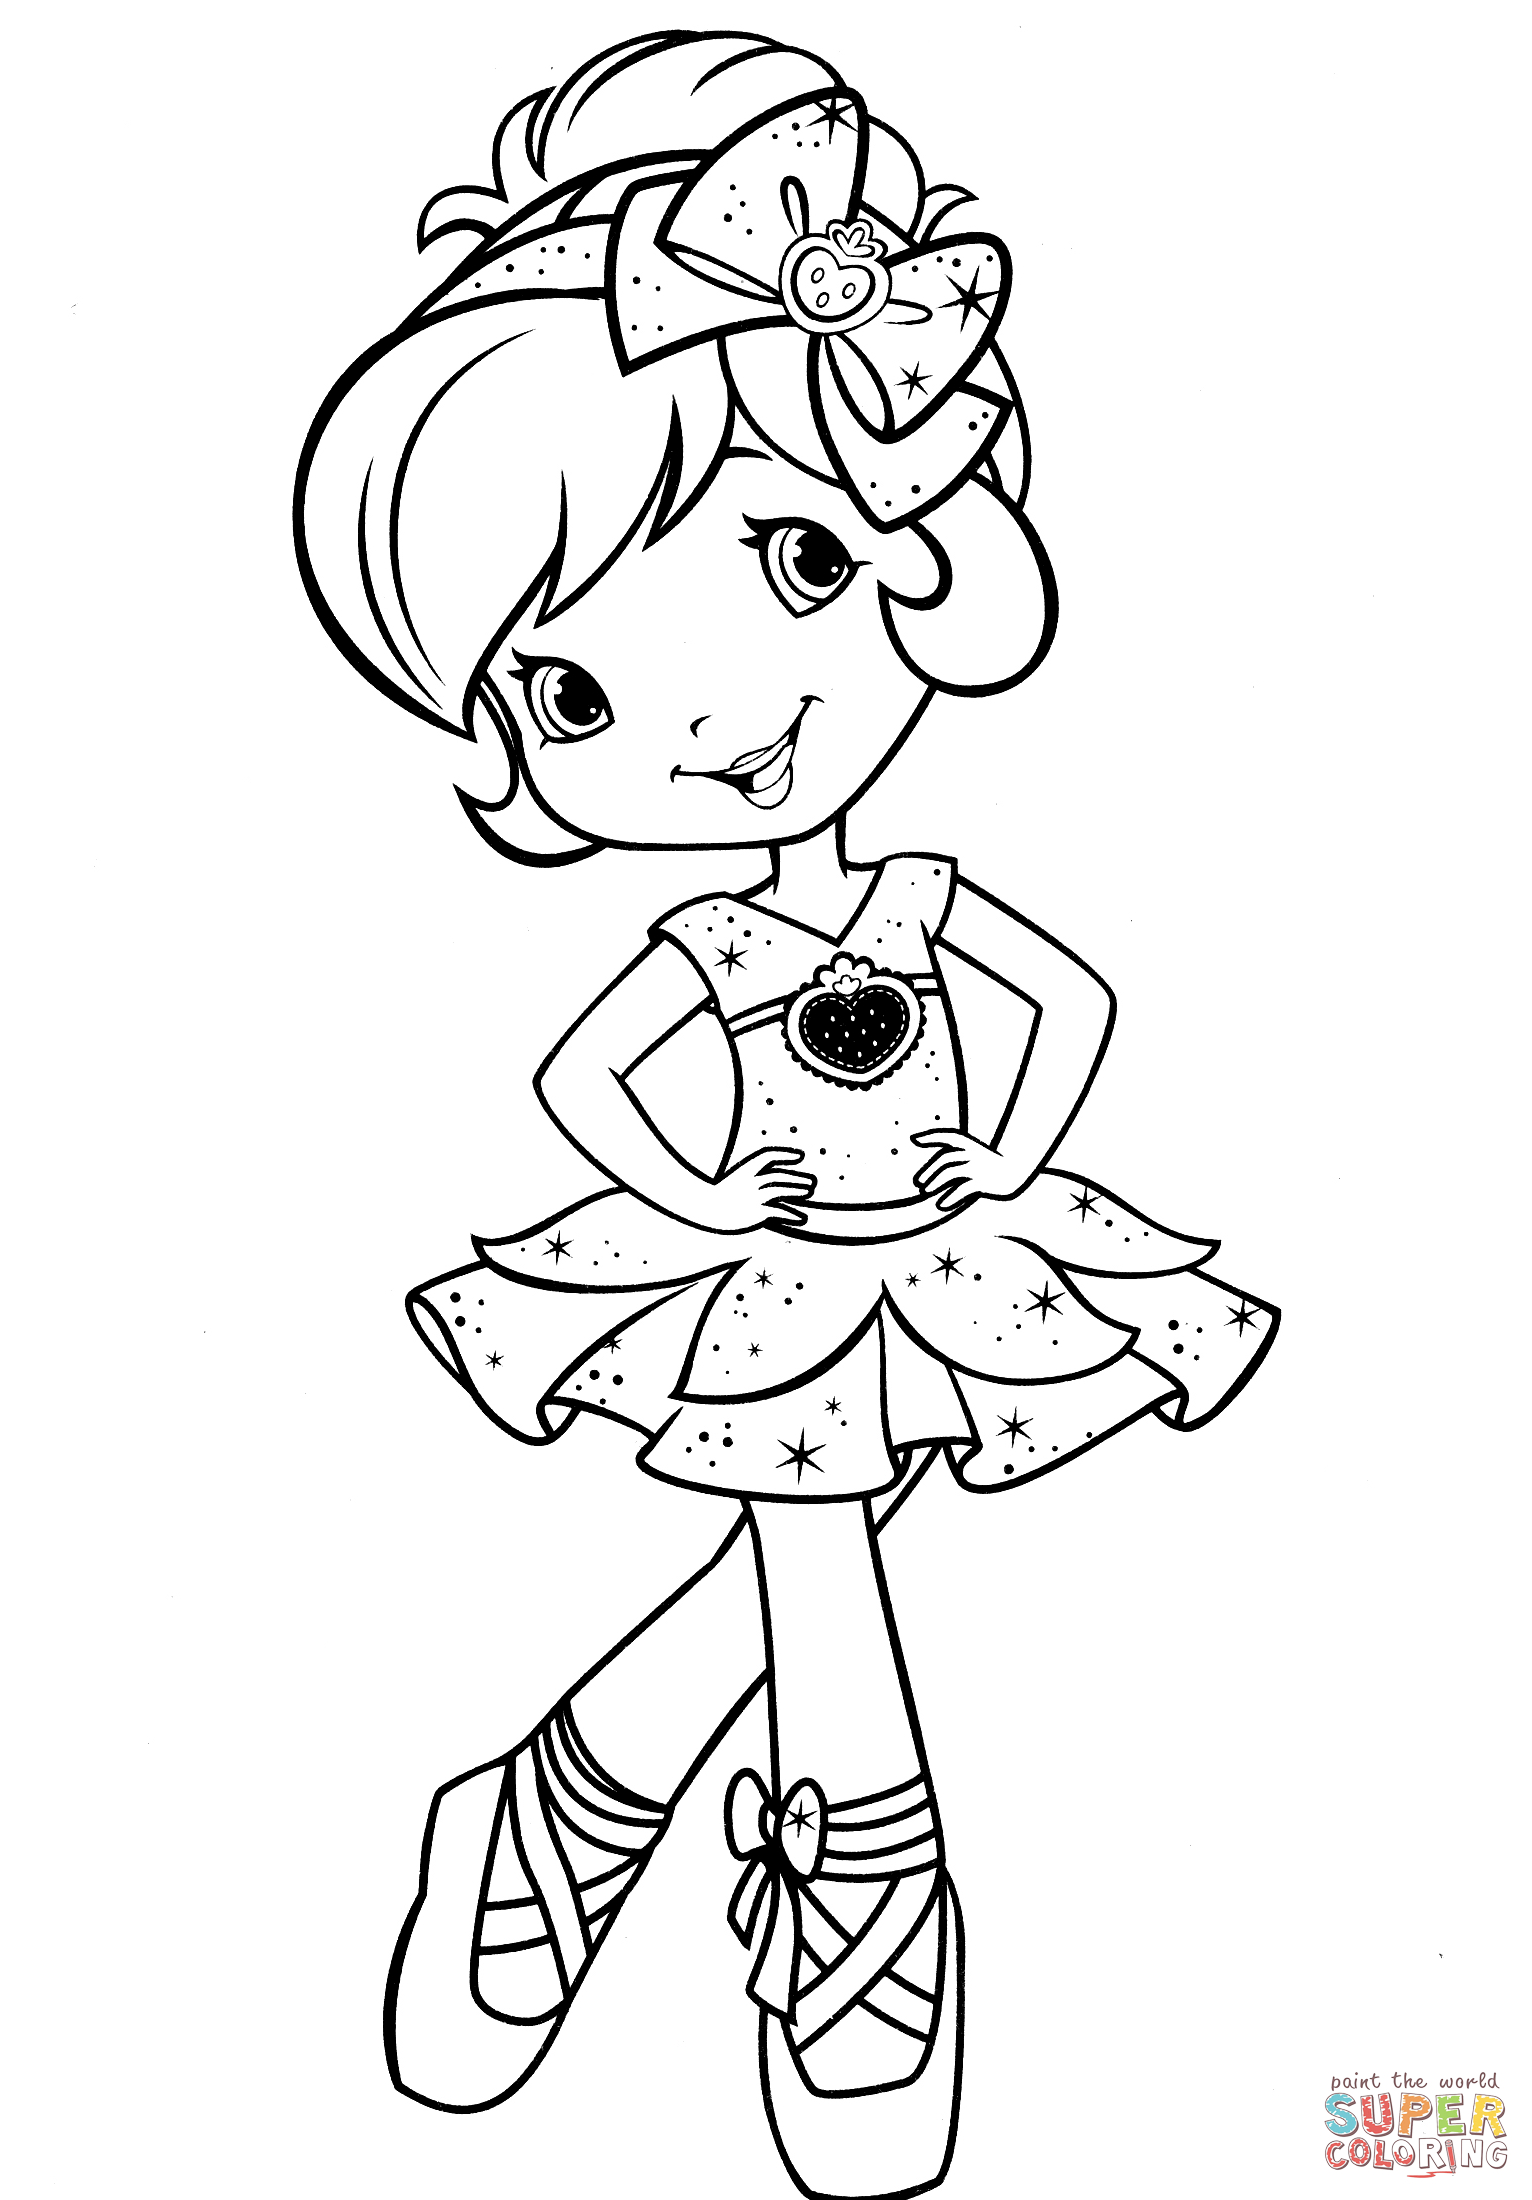 Ballerina Coloring Pages For Kids Strawberry Shortcake Ballerina Coloring Page Free Printable